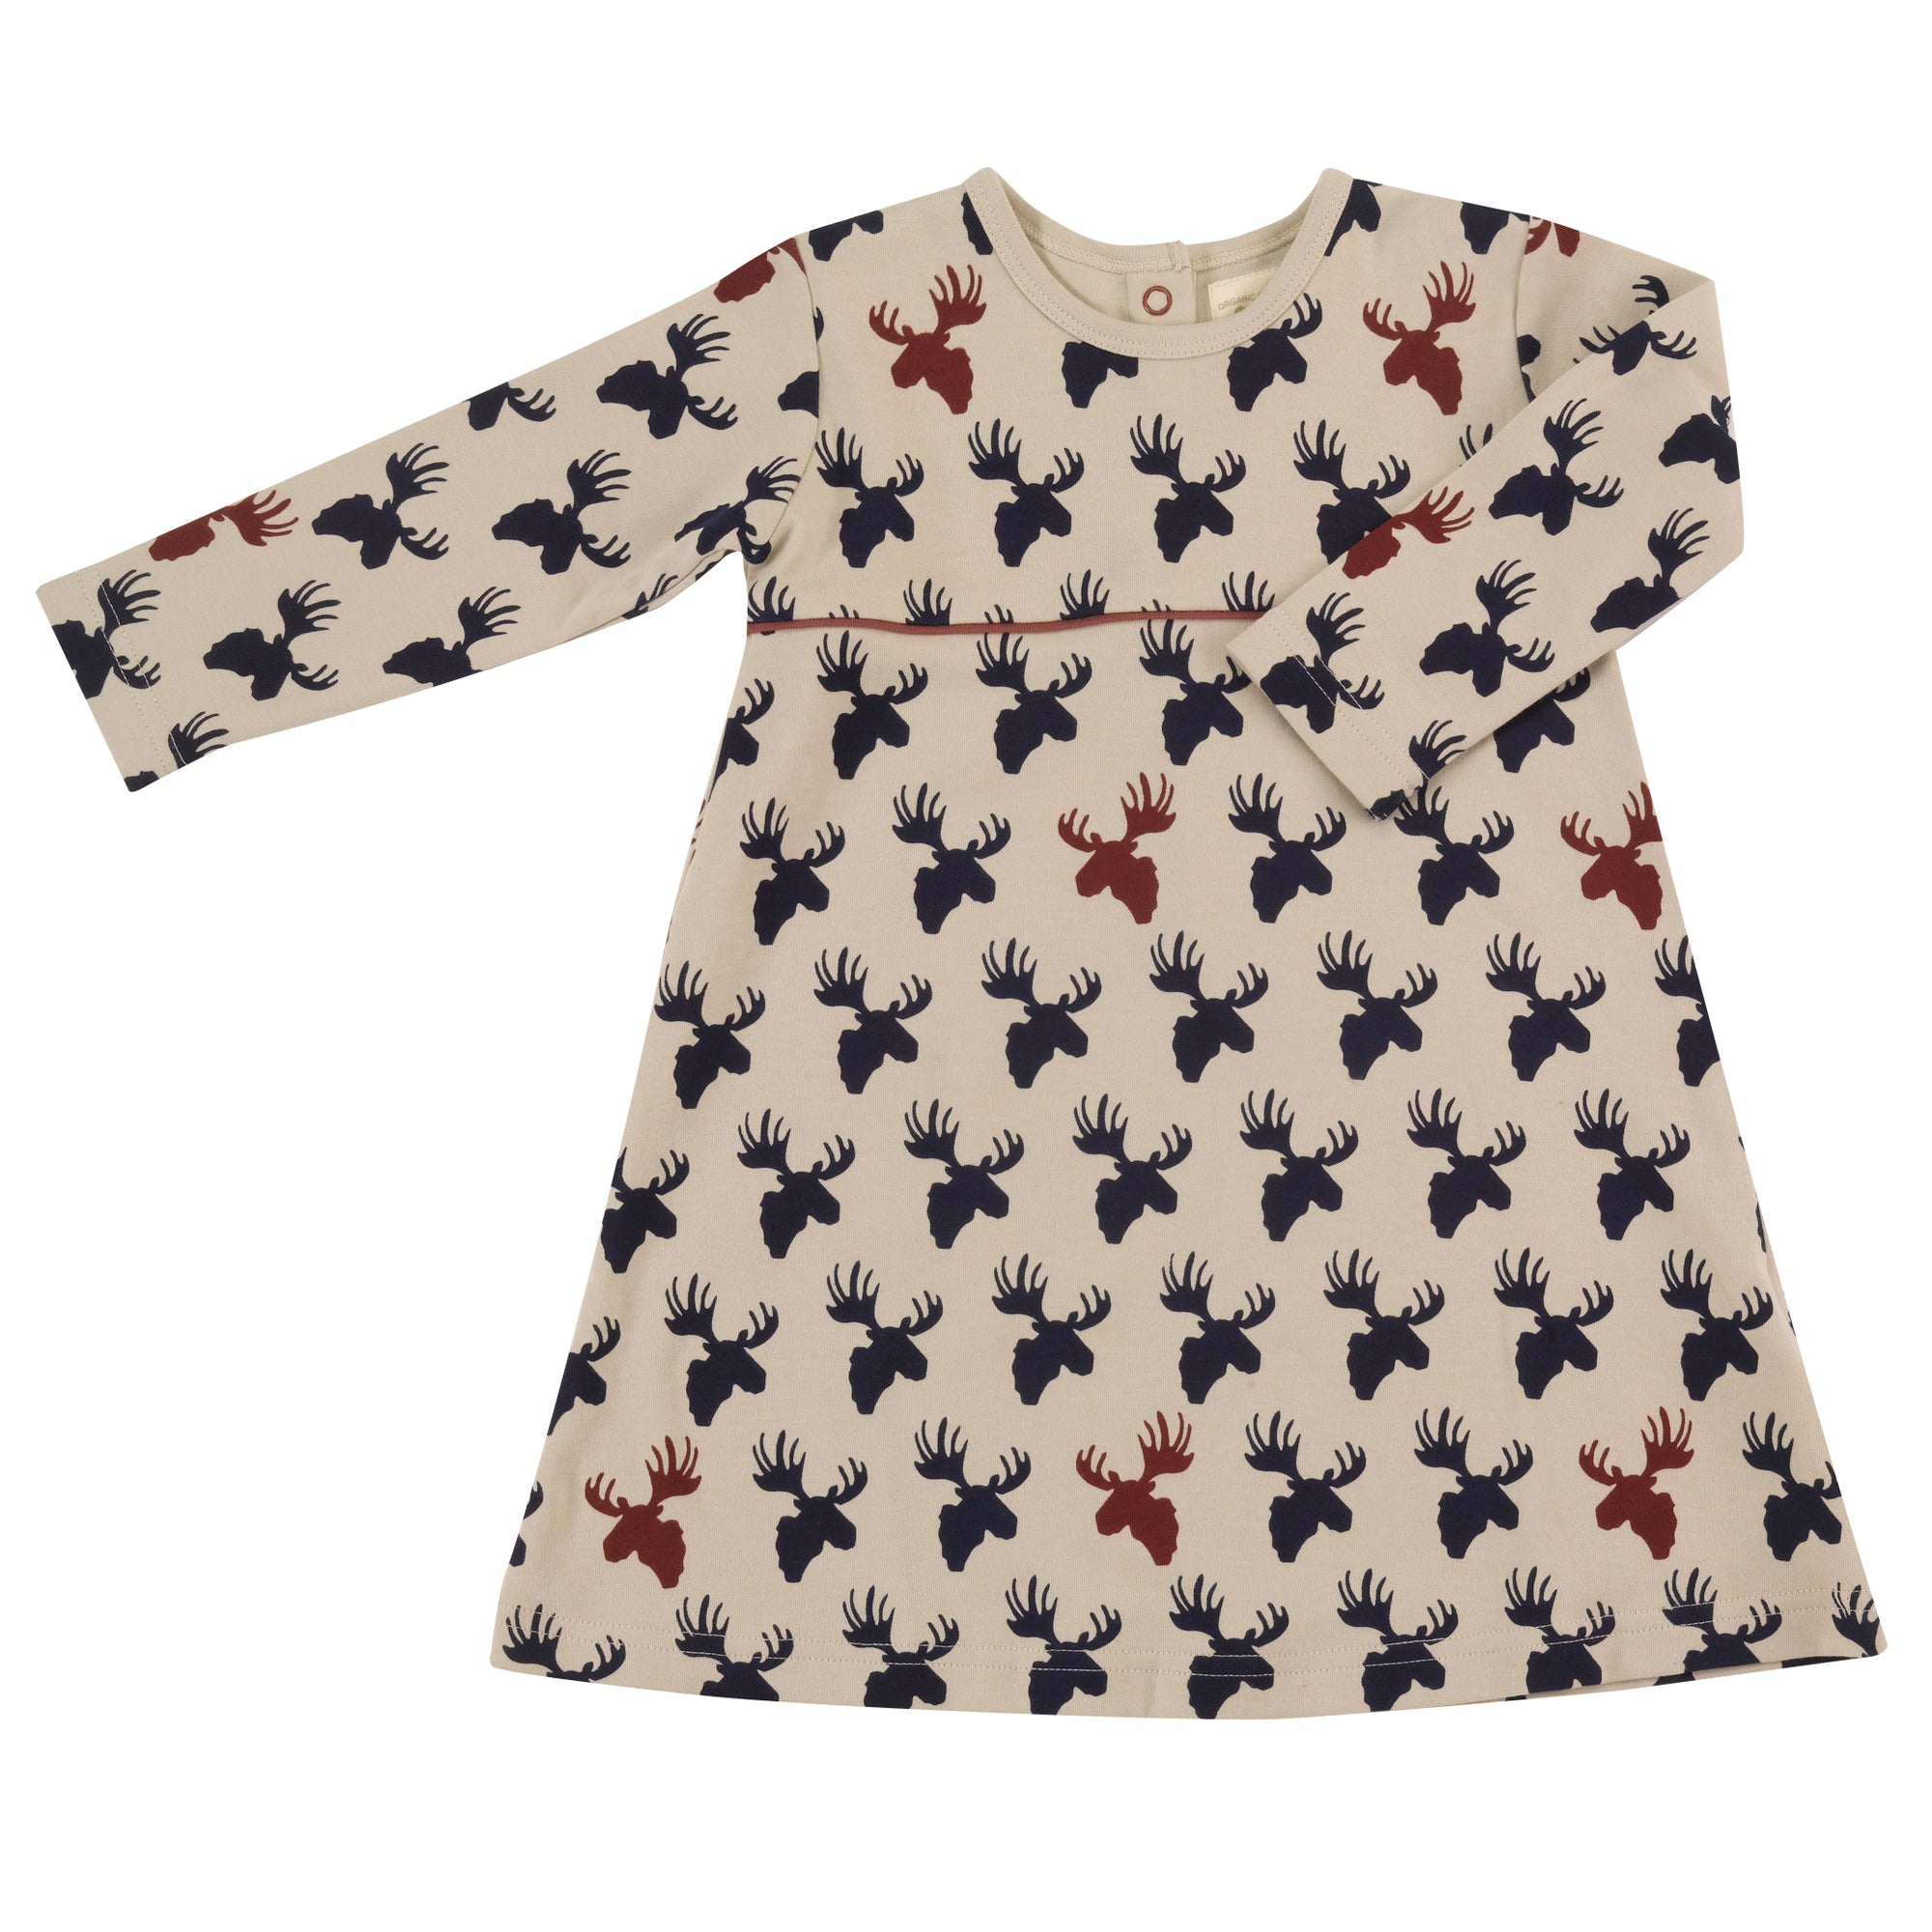 Moose Print Skater Dress - Inky Blue/Pumice